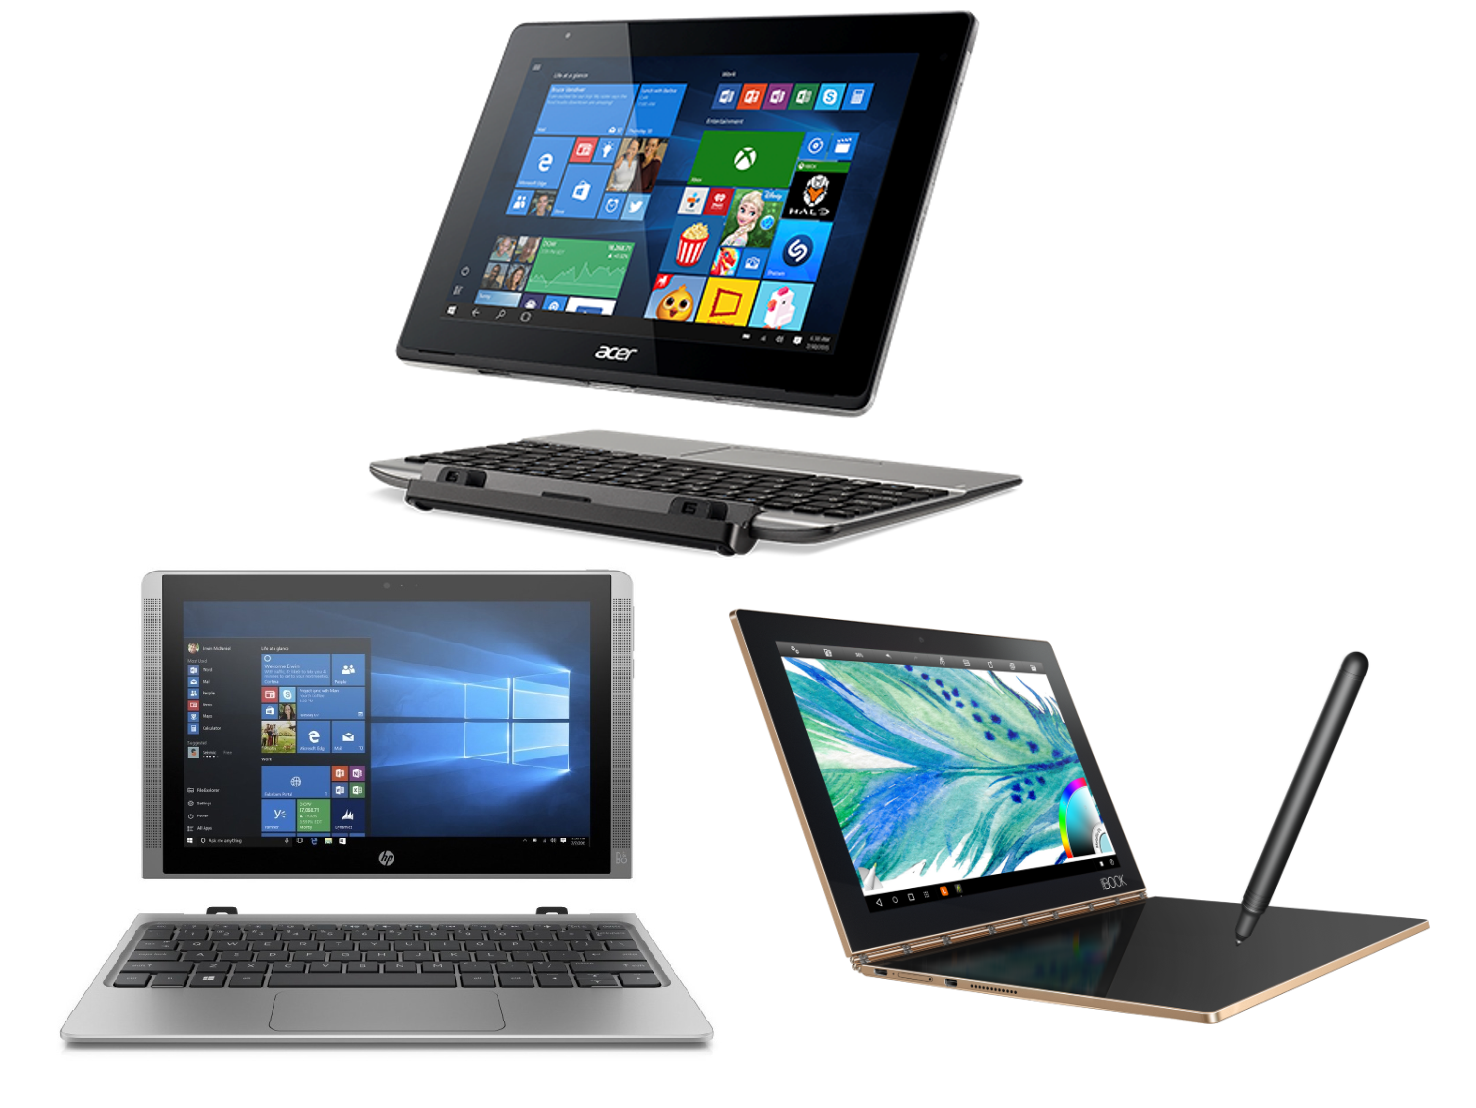 Face Off: Lenovo Yoga Book vs. Acer Aspire Switch vs. HP ... | 1476 x 1108 png 1149kB